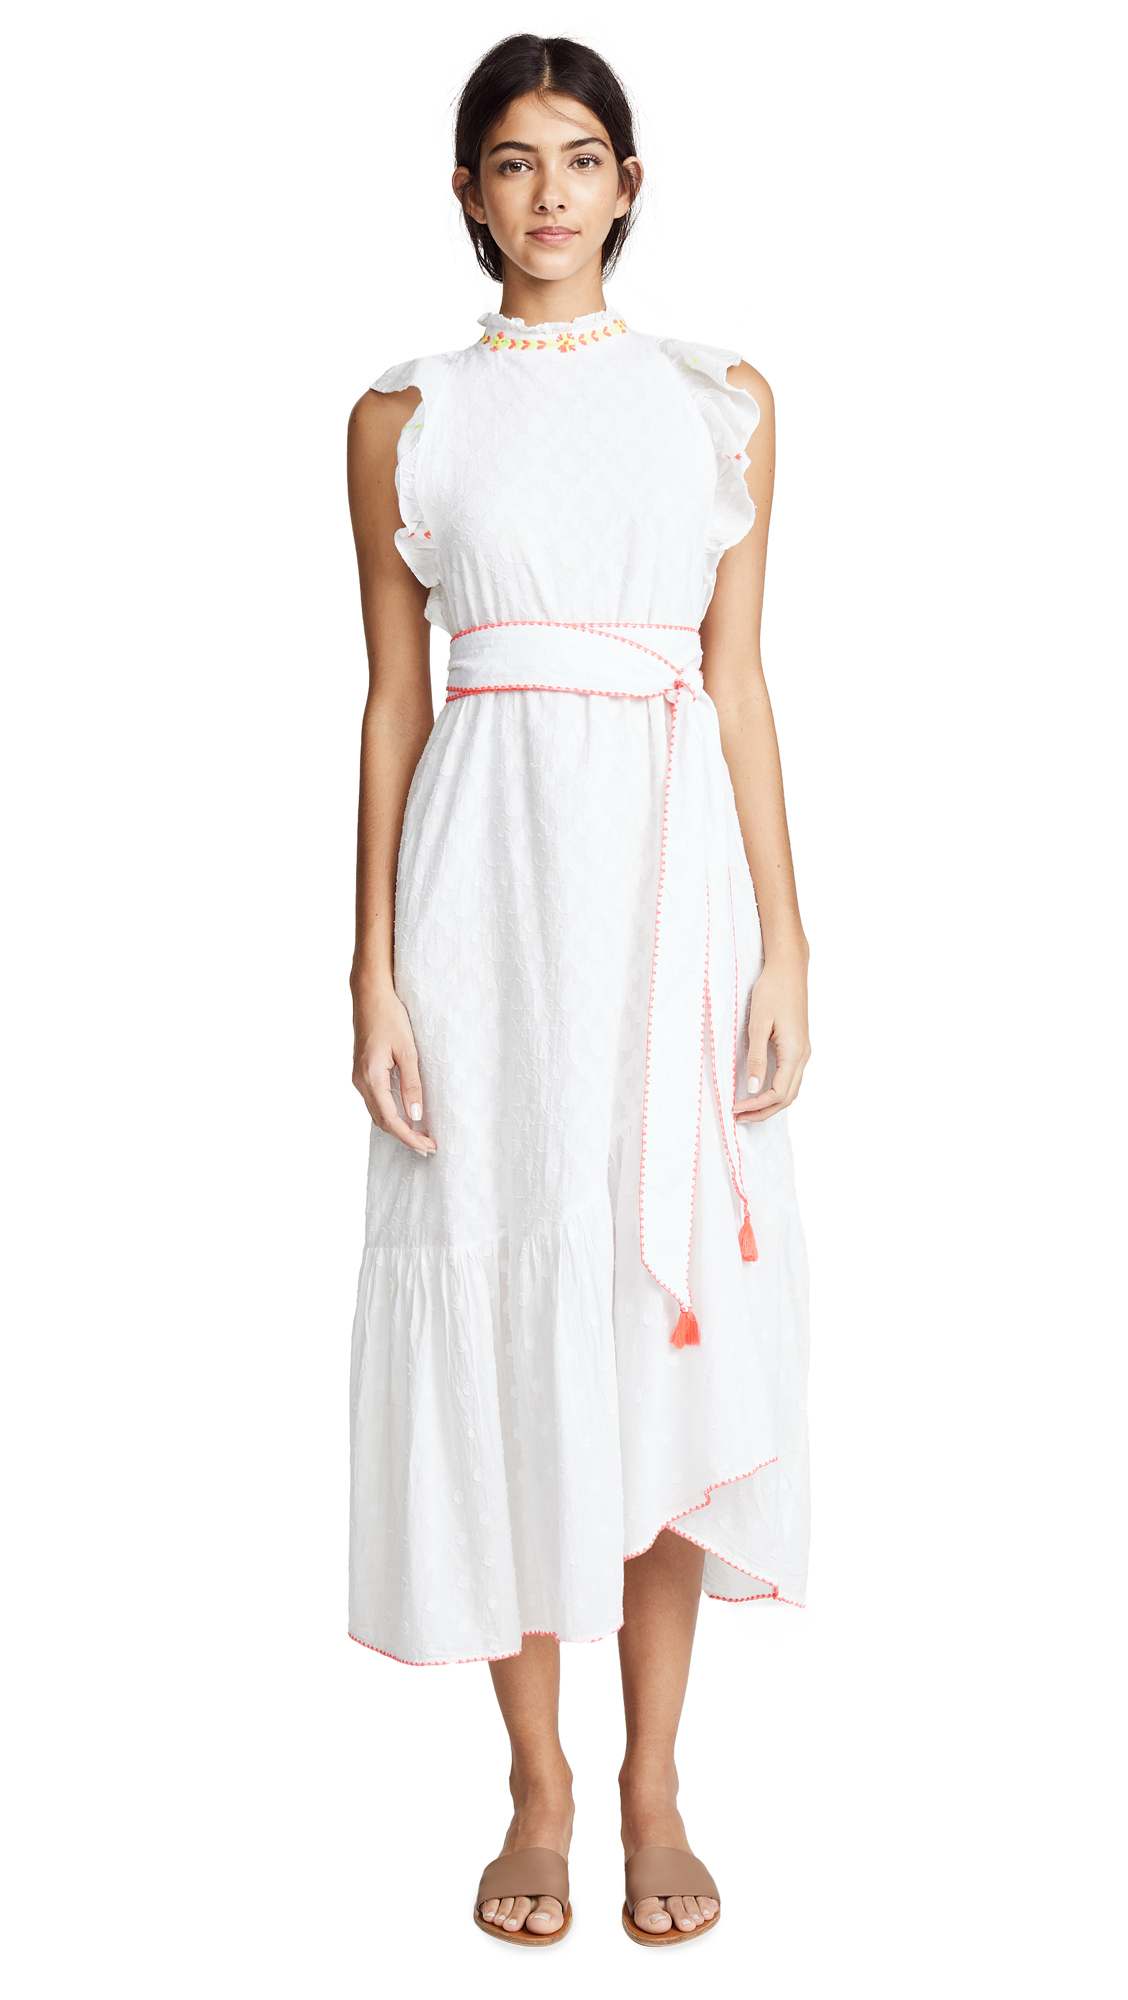 BANJANAN Bulbul Dress in White Cotton Dobby